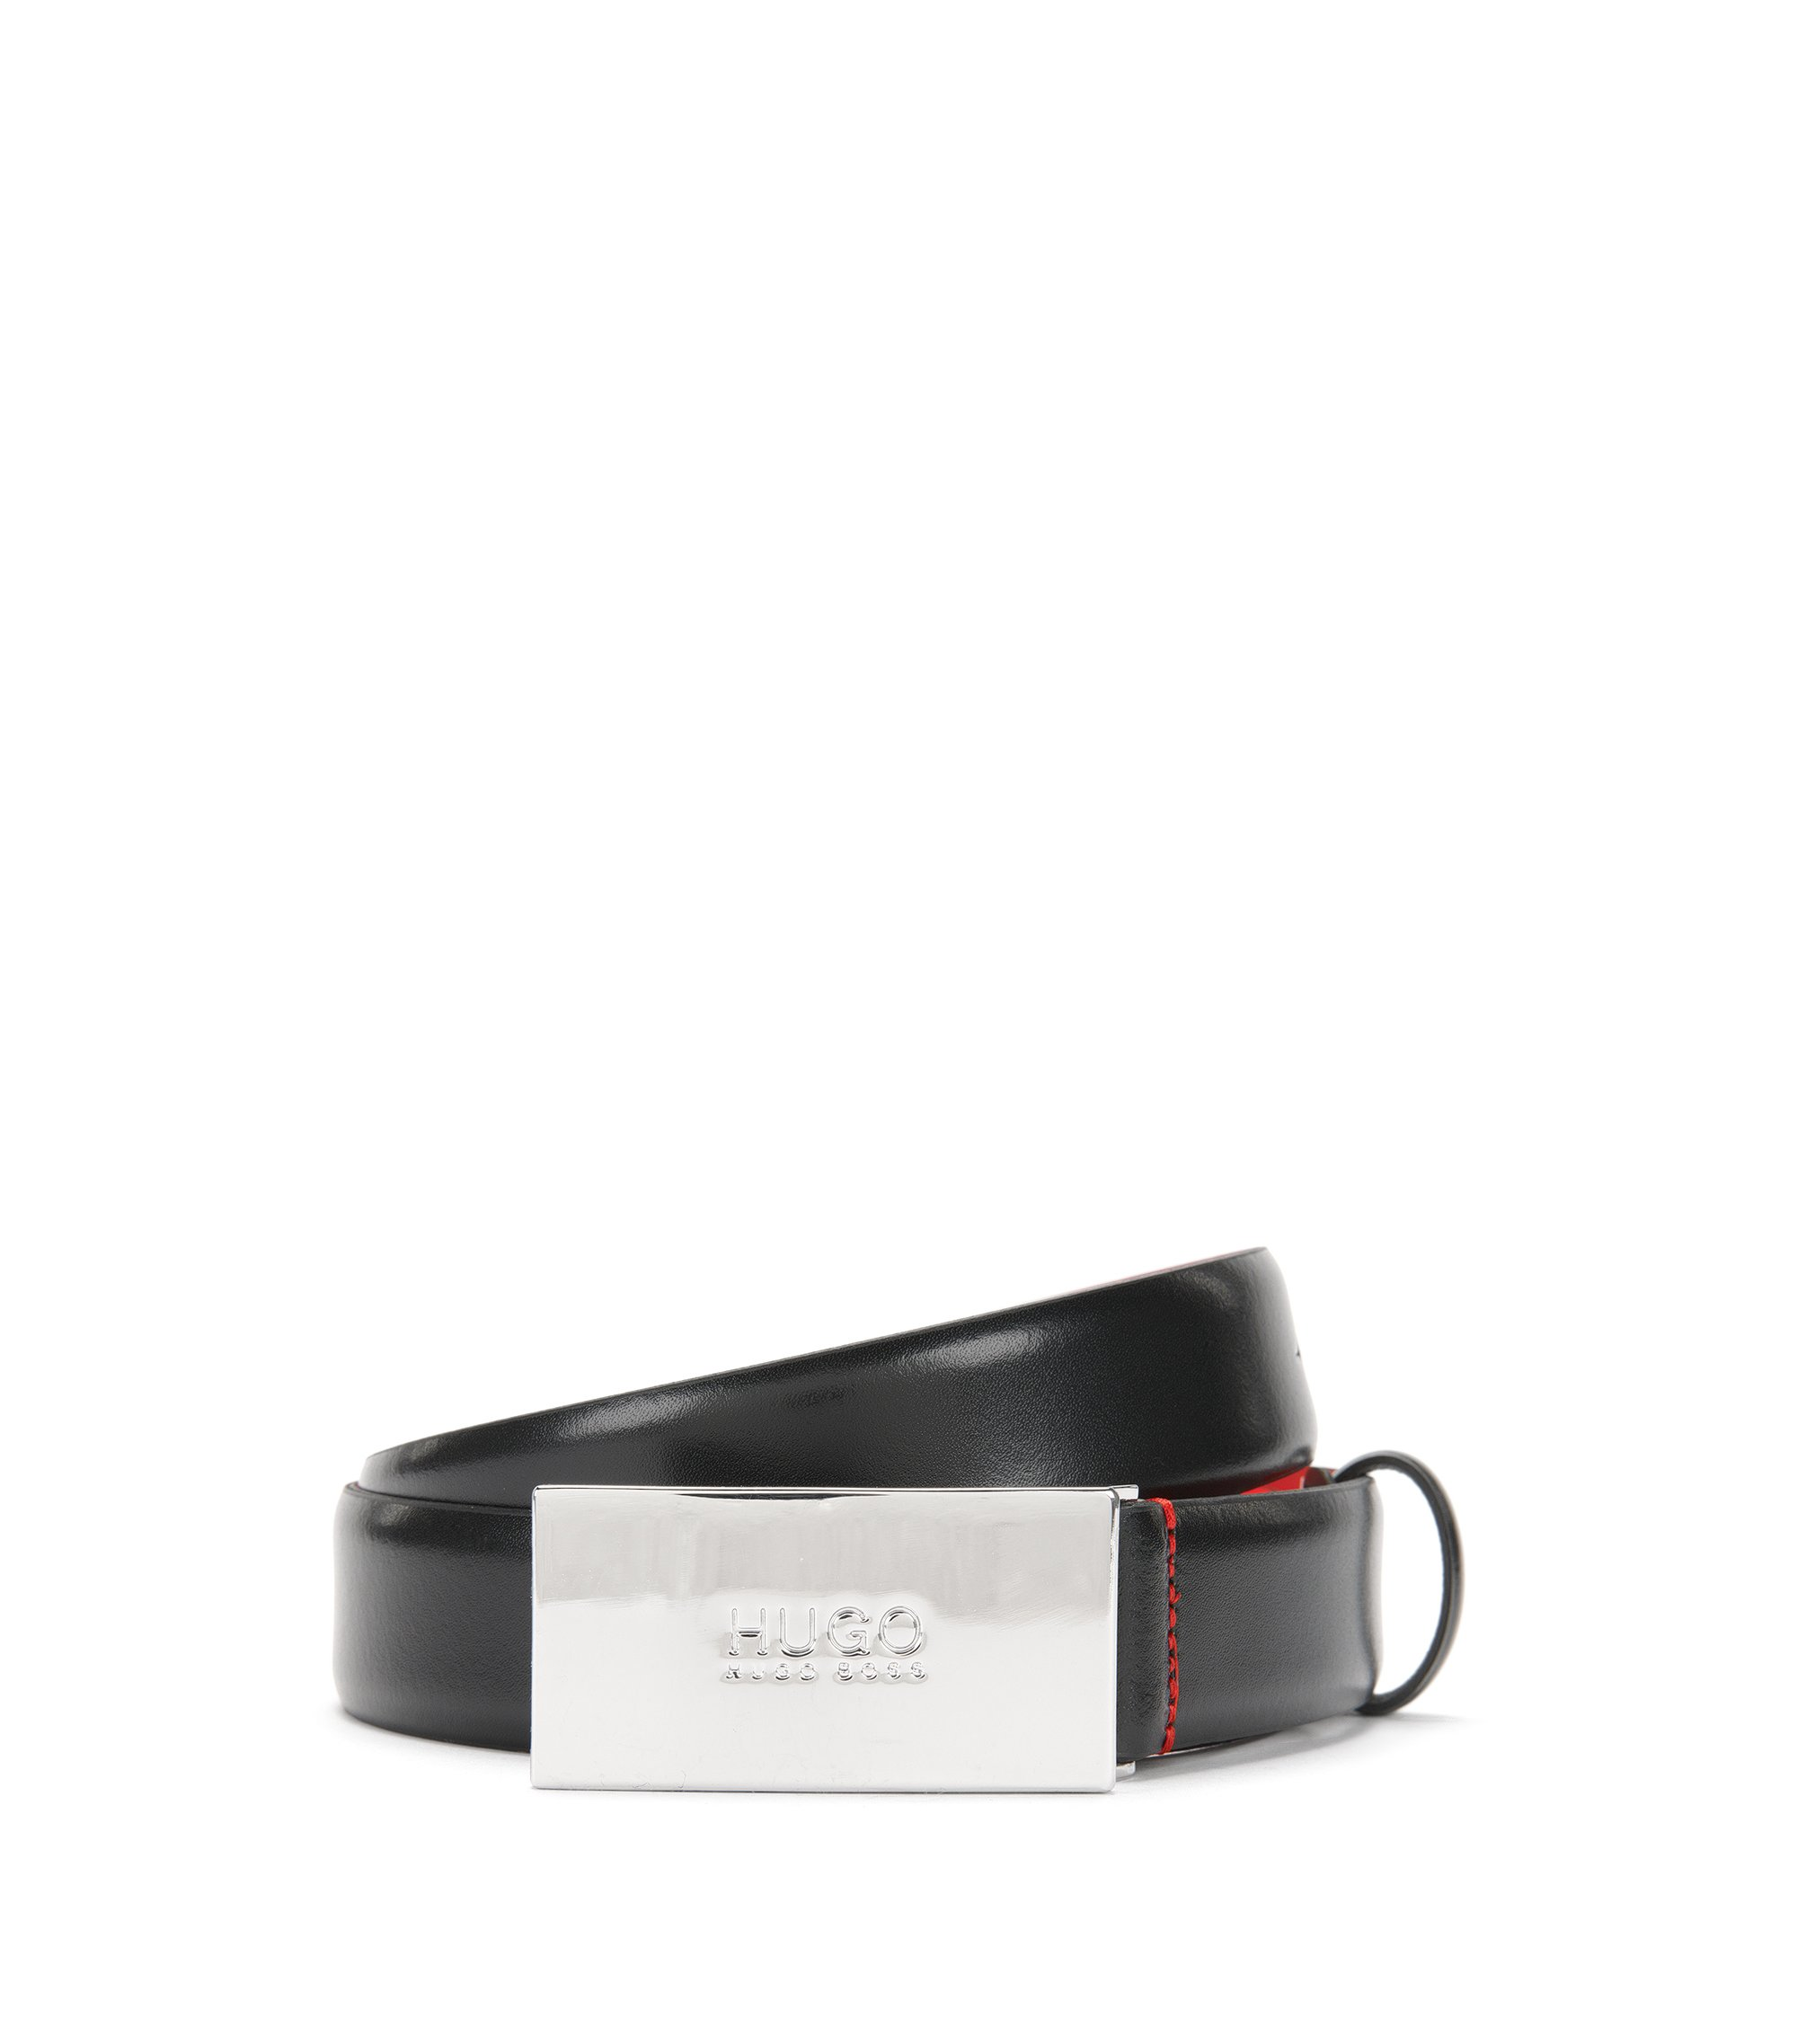 Pin Buckle Leather Belt | Baldwin N, Black